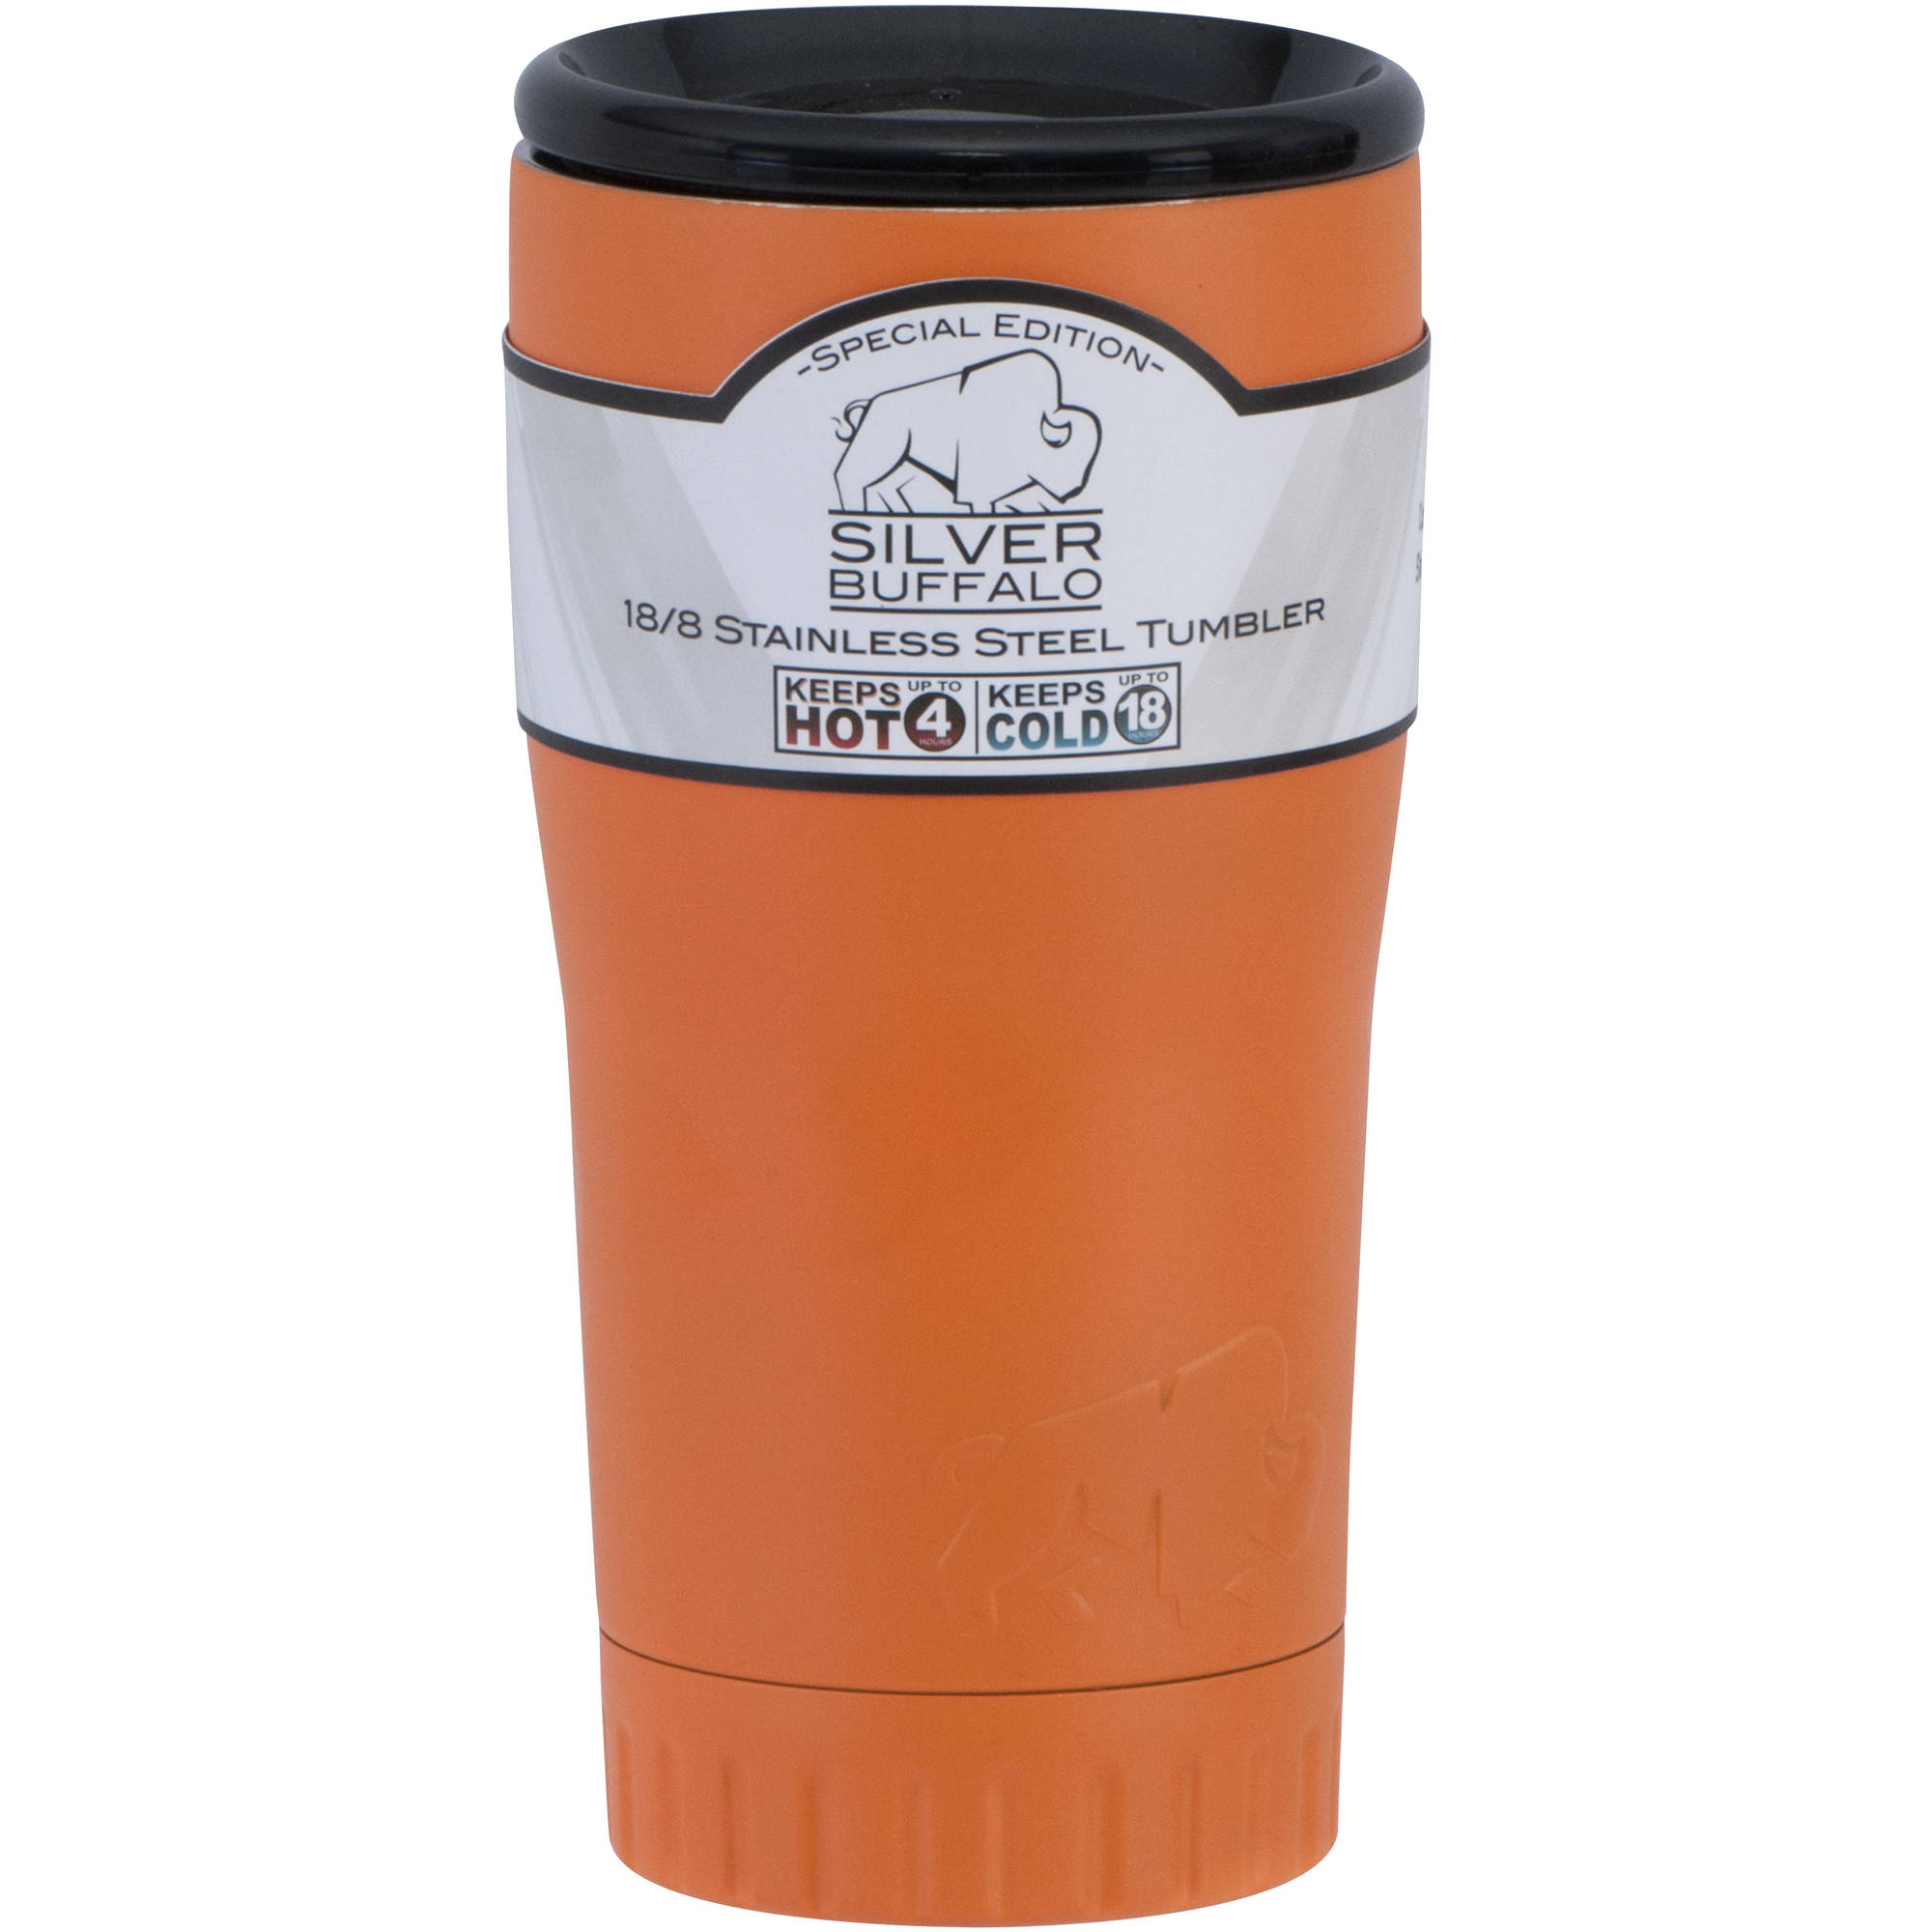 Silver Buffalo Stainless Steel Insulated Tumbler, 20 oz., Matte Orange